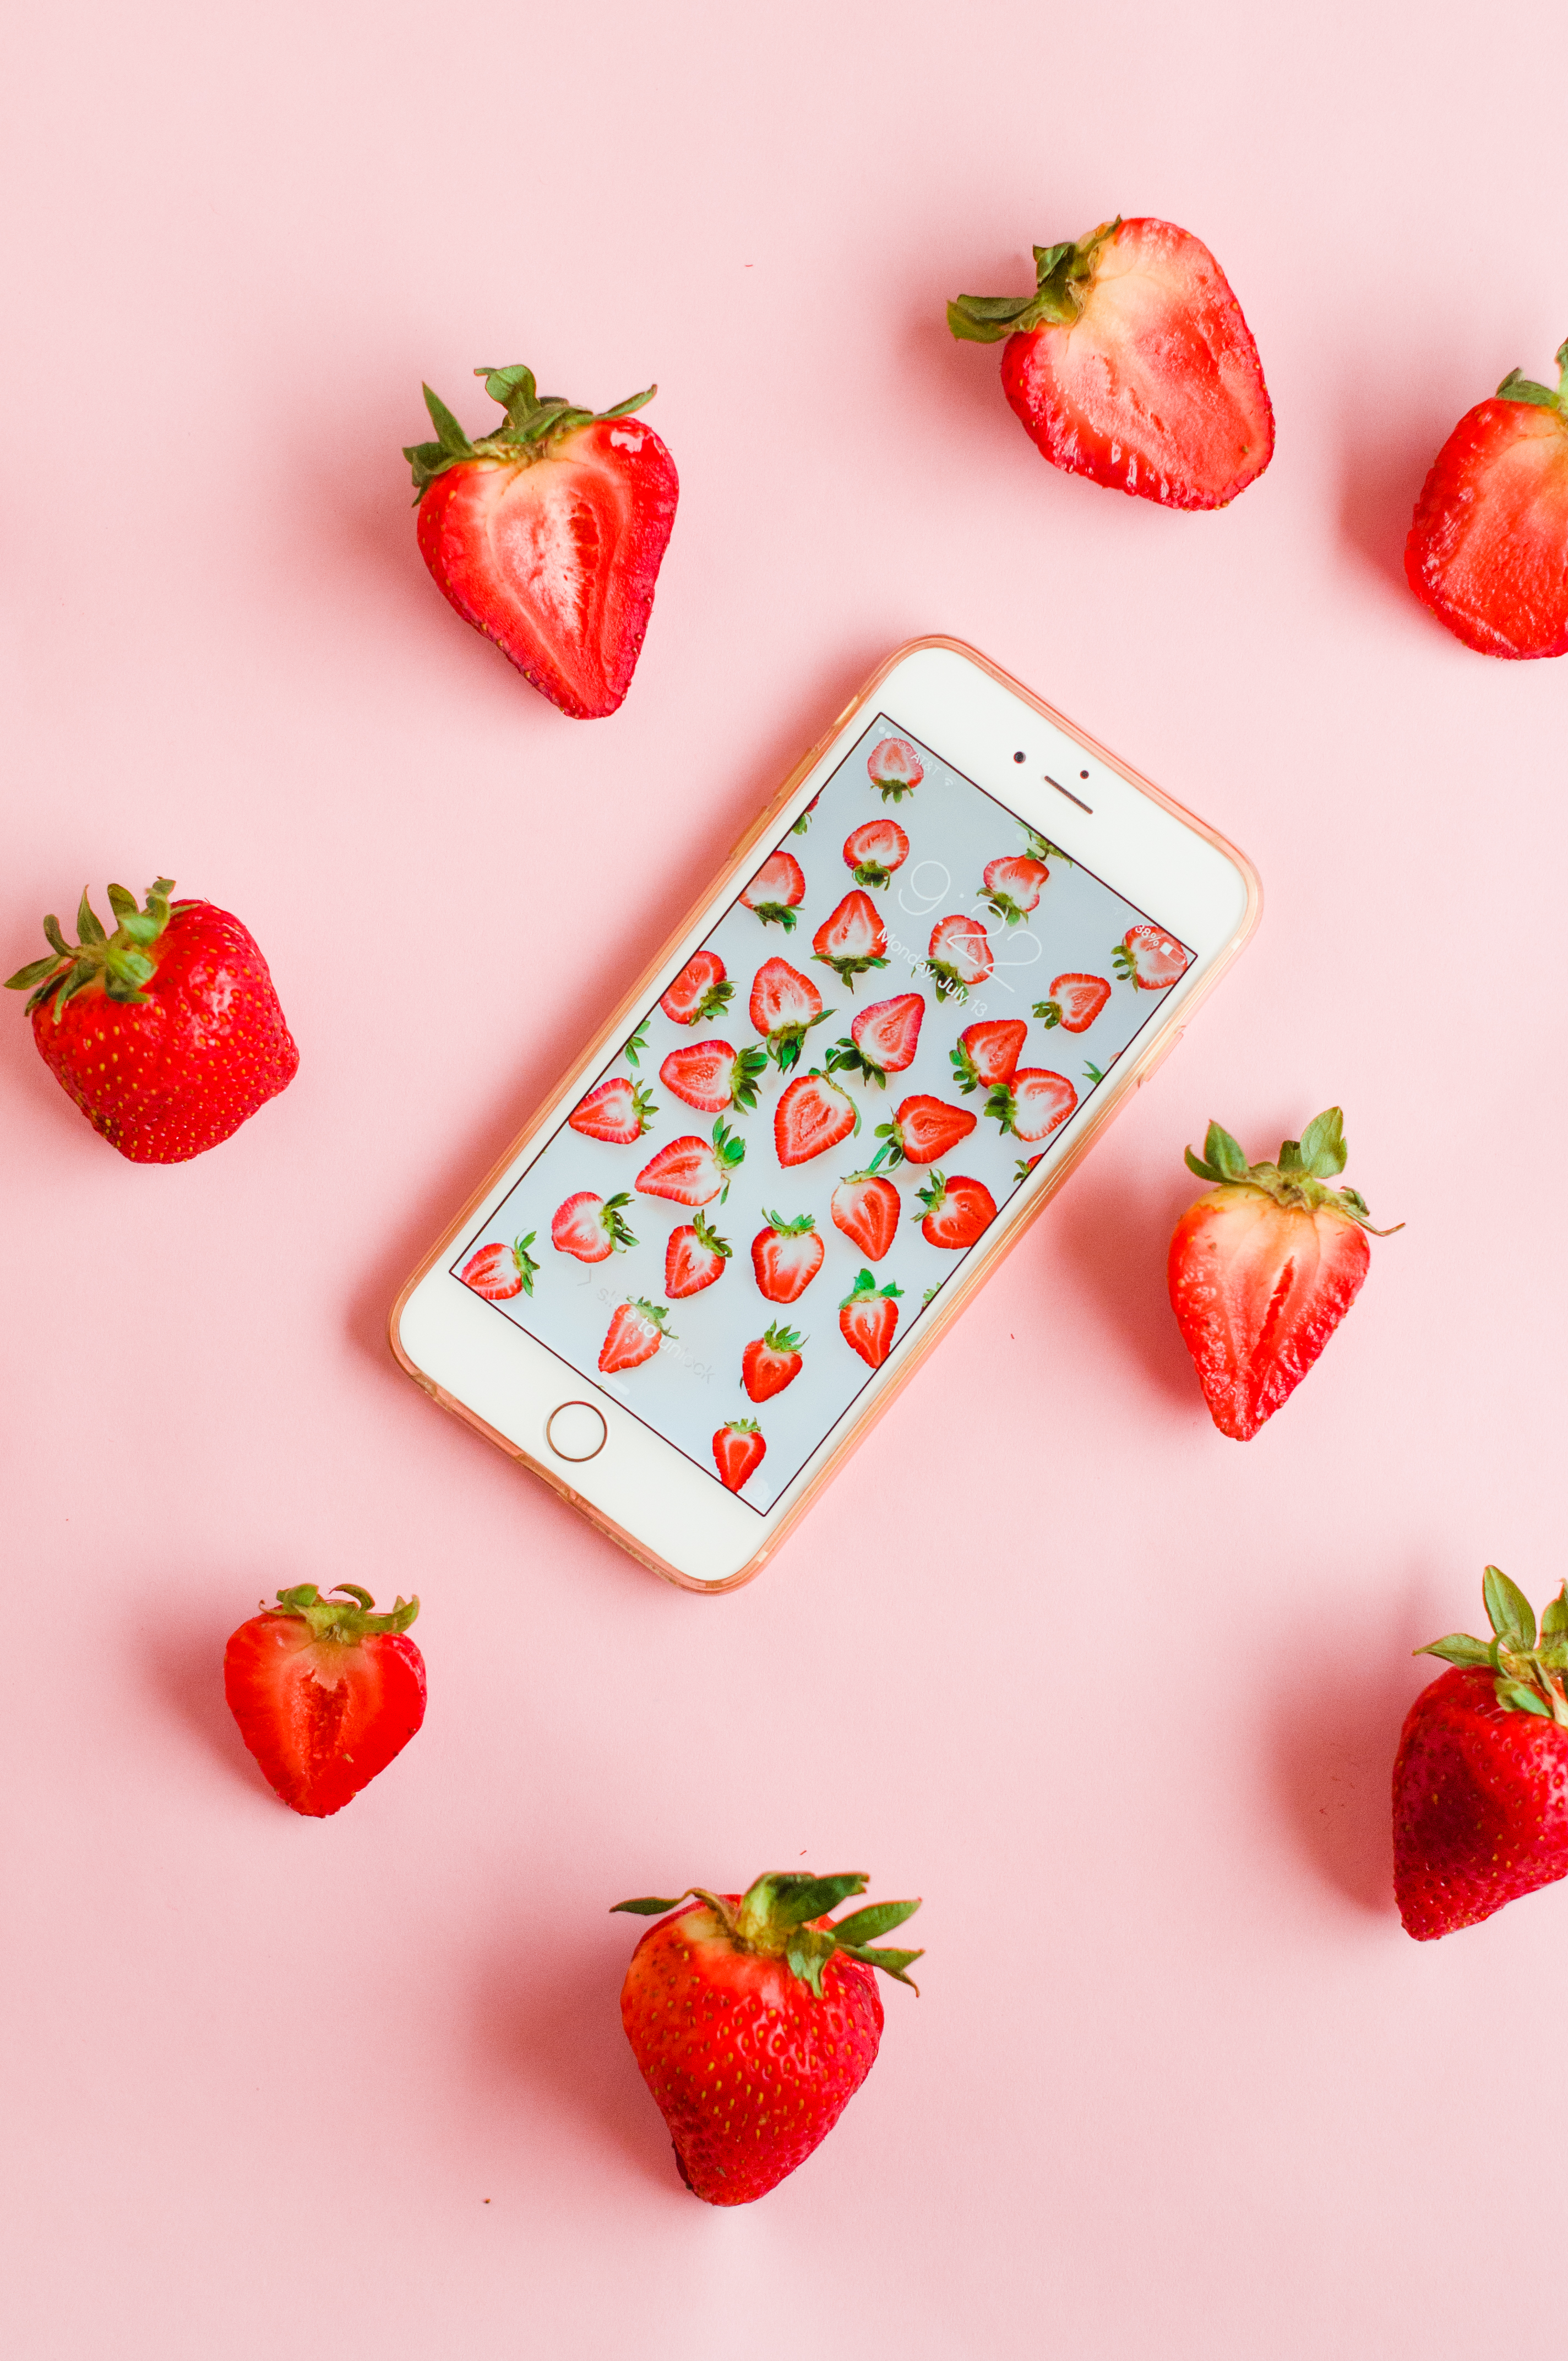 strawberry lesbian dating site Women's online dating profile tips: 5 things that men hate online  meet  other lesbian singles at home or connect on the go  and i didn't go to words or  clubs and max how am i ever instigator to strawberry someone.